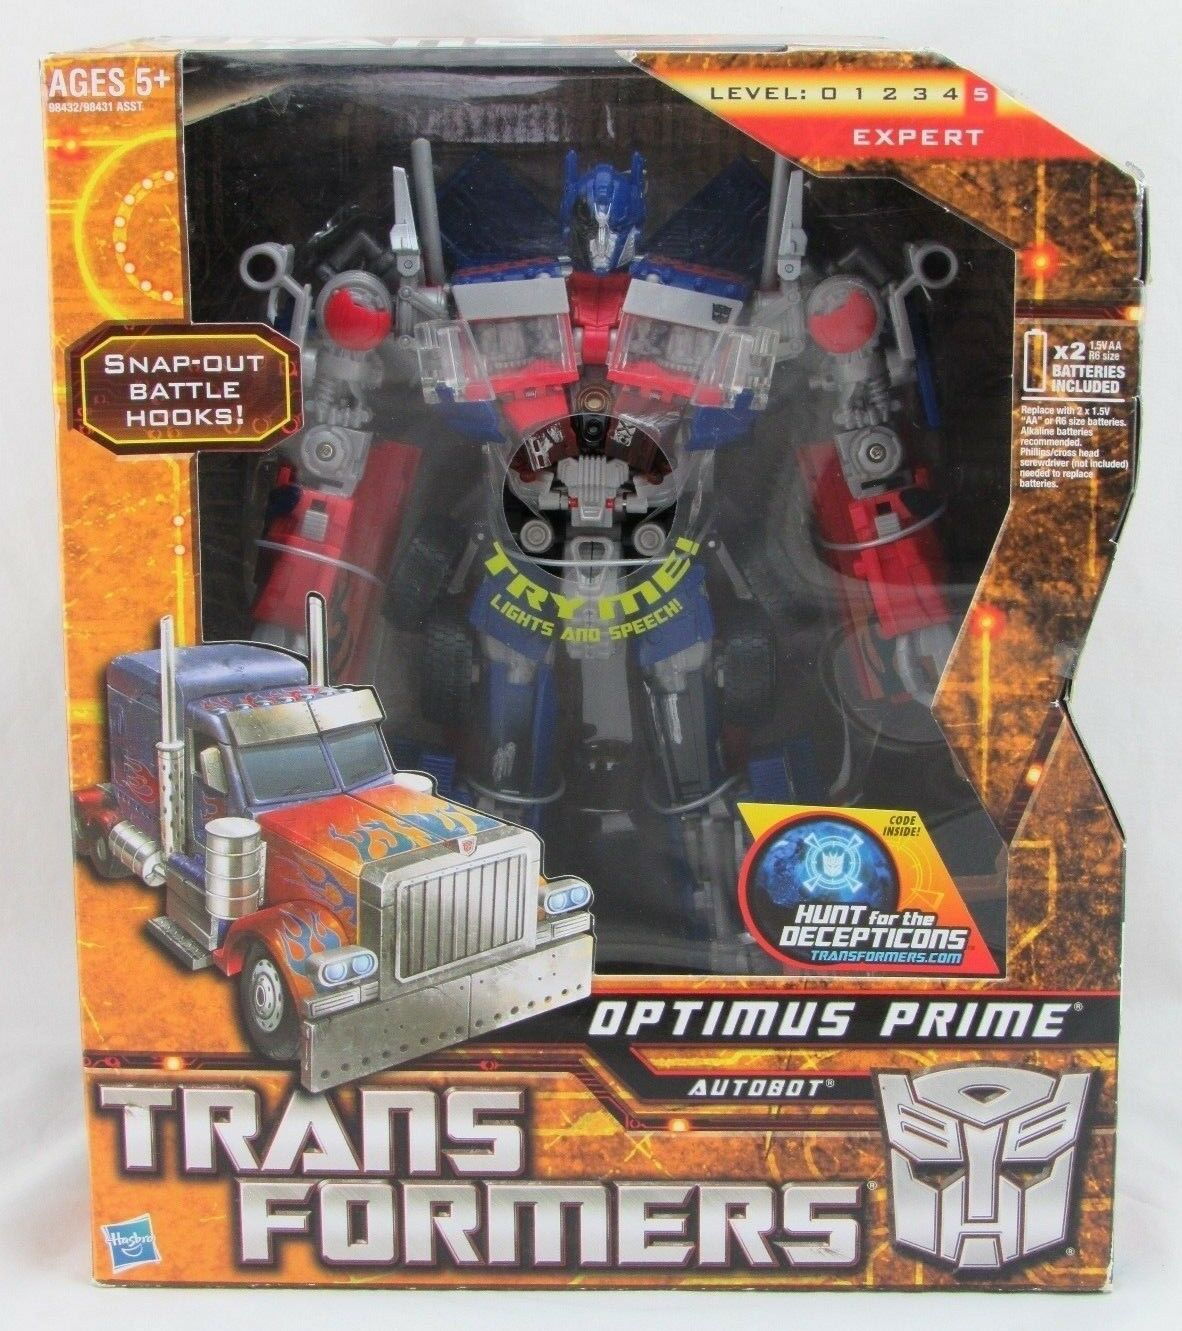 Transformers Optimus Prime Autobot, Hunt for Decepticons, Hasbro 2009, In Box